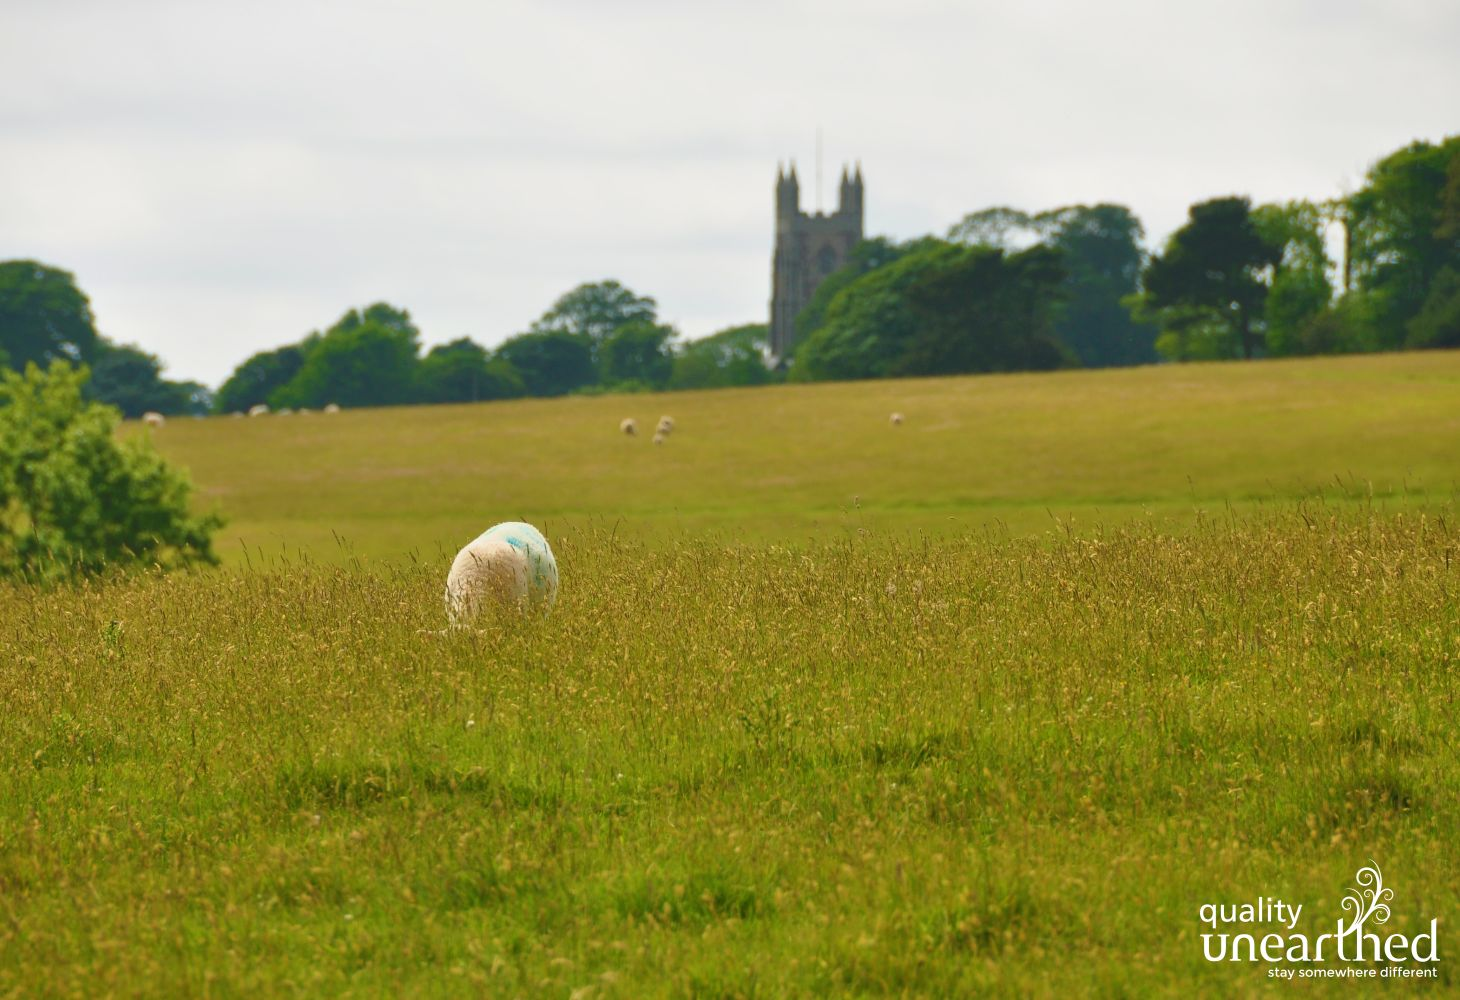 Maker Church And Sheep In Mount Edgcumbe Deer Park 0809